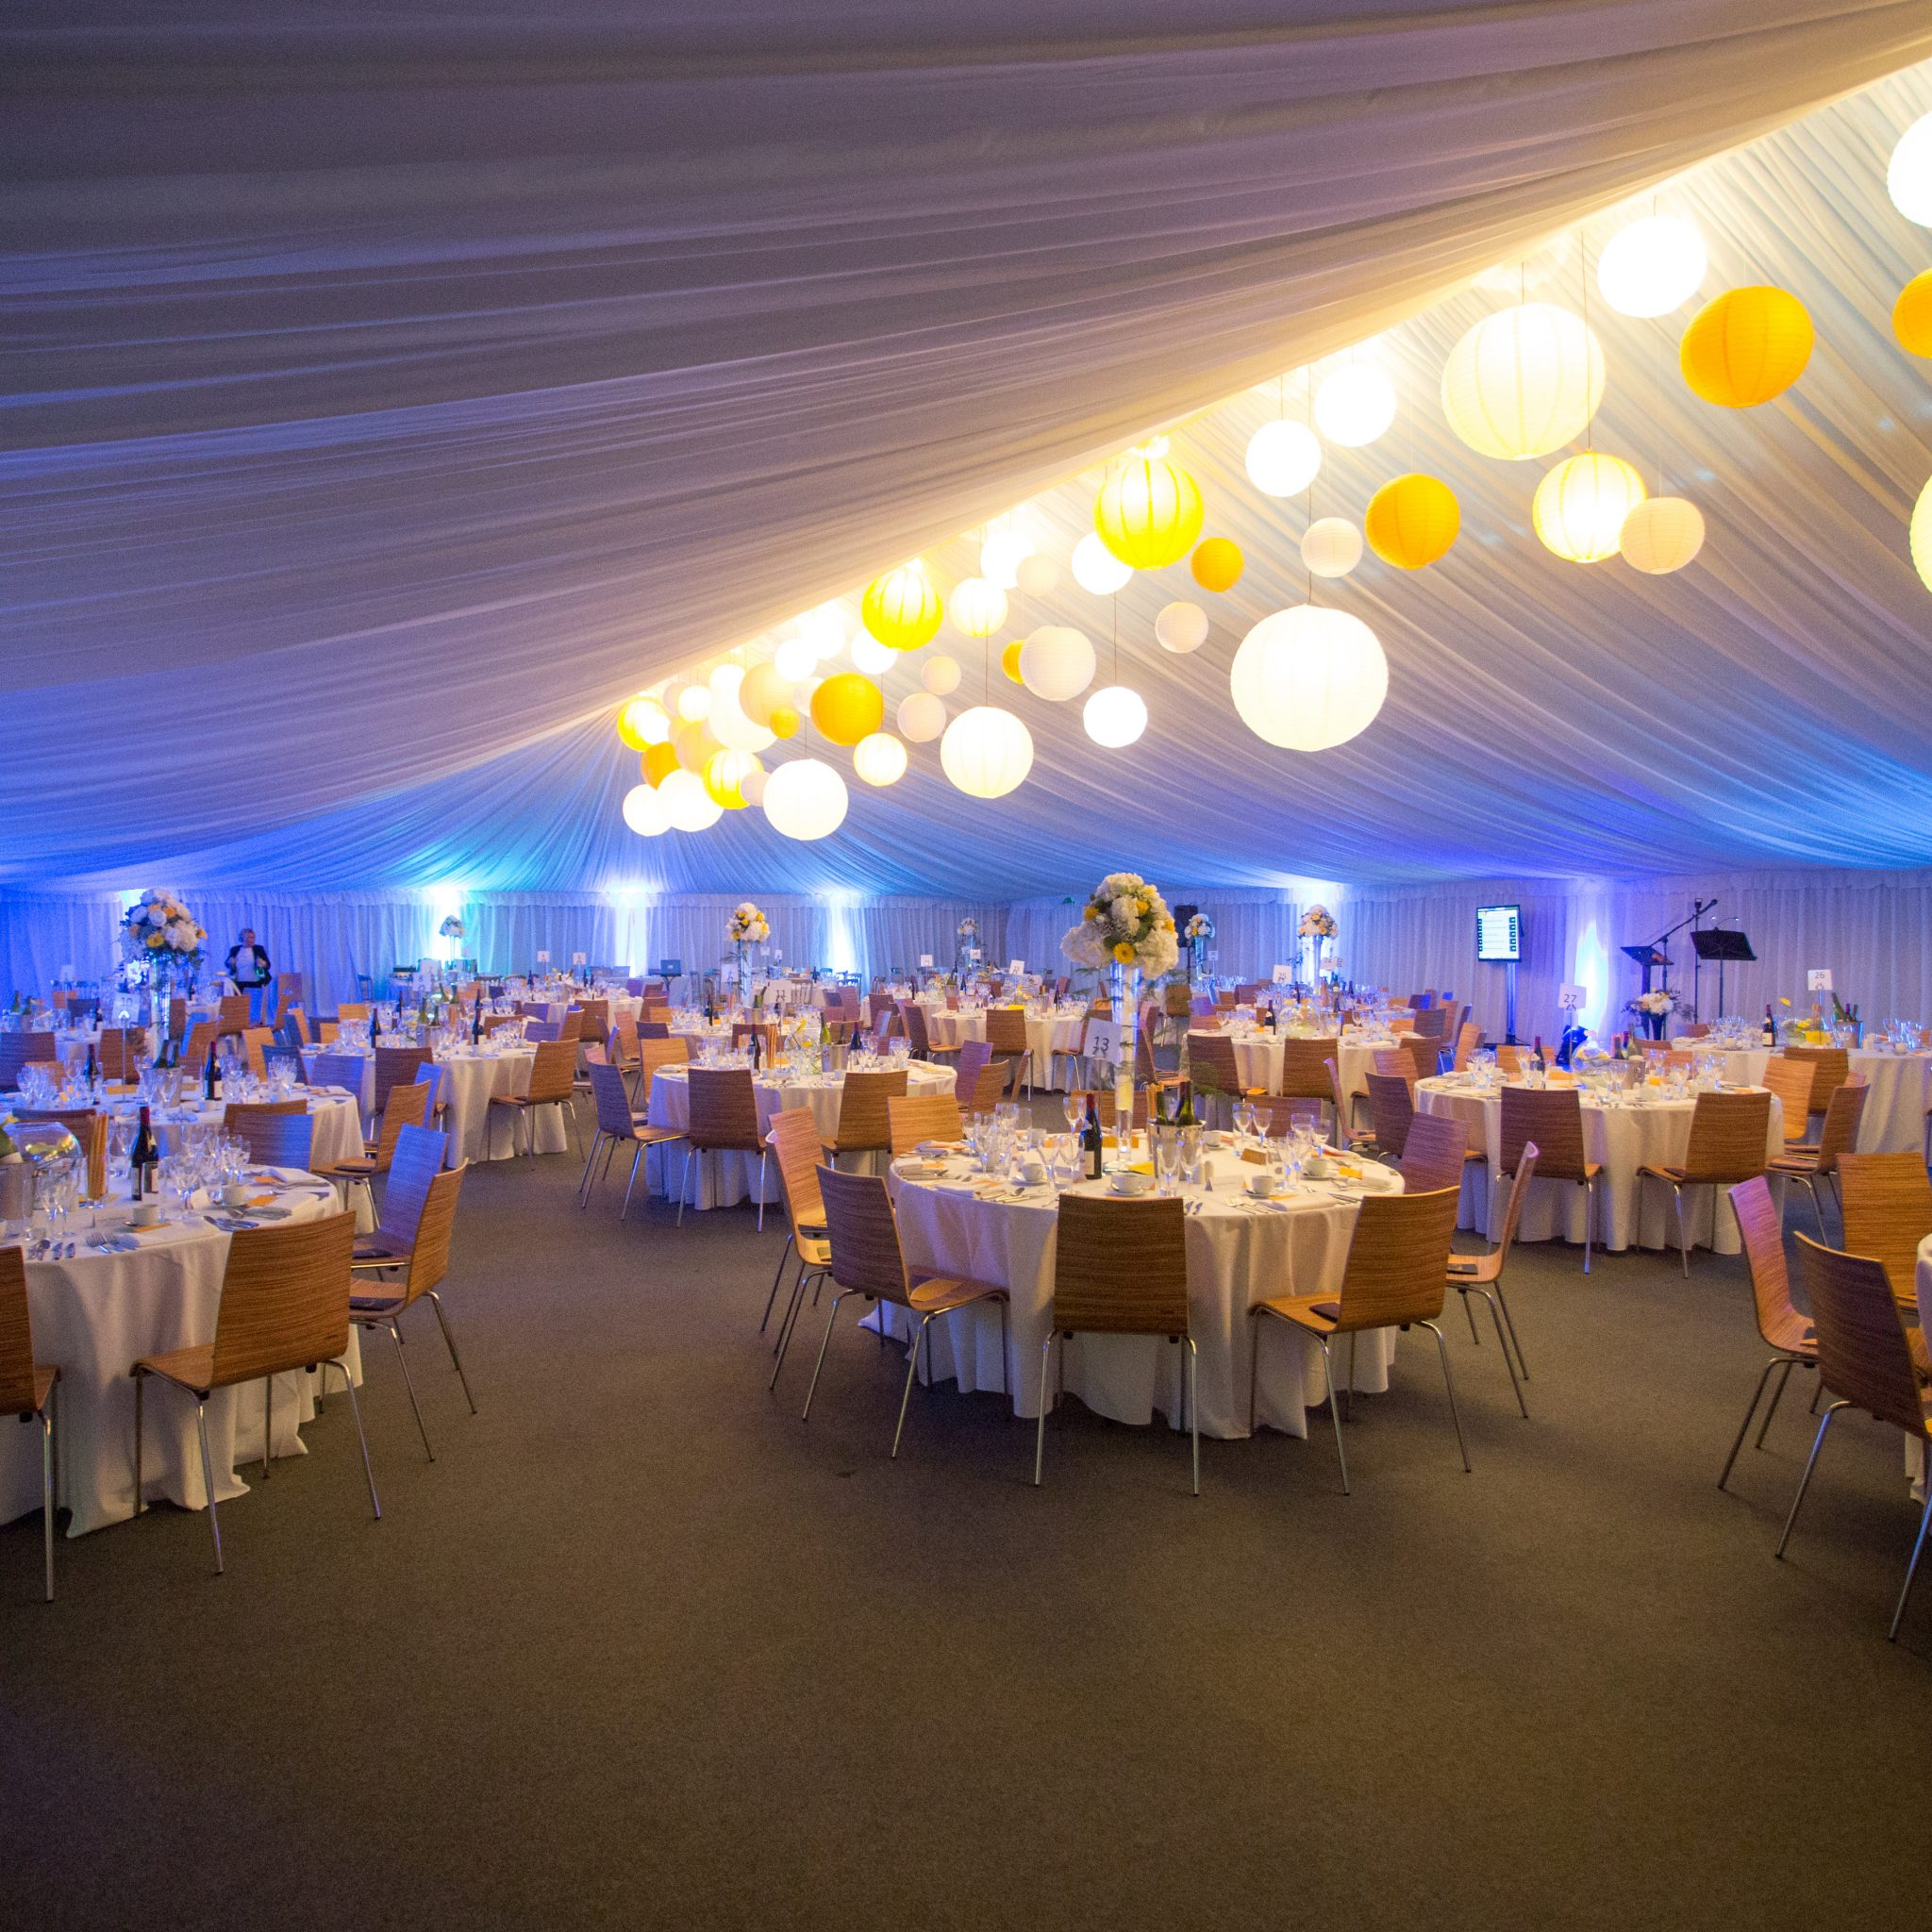 ports Hall to indoor marquee - after transformation